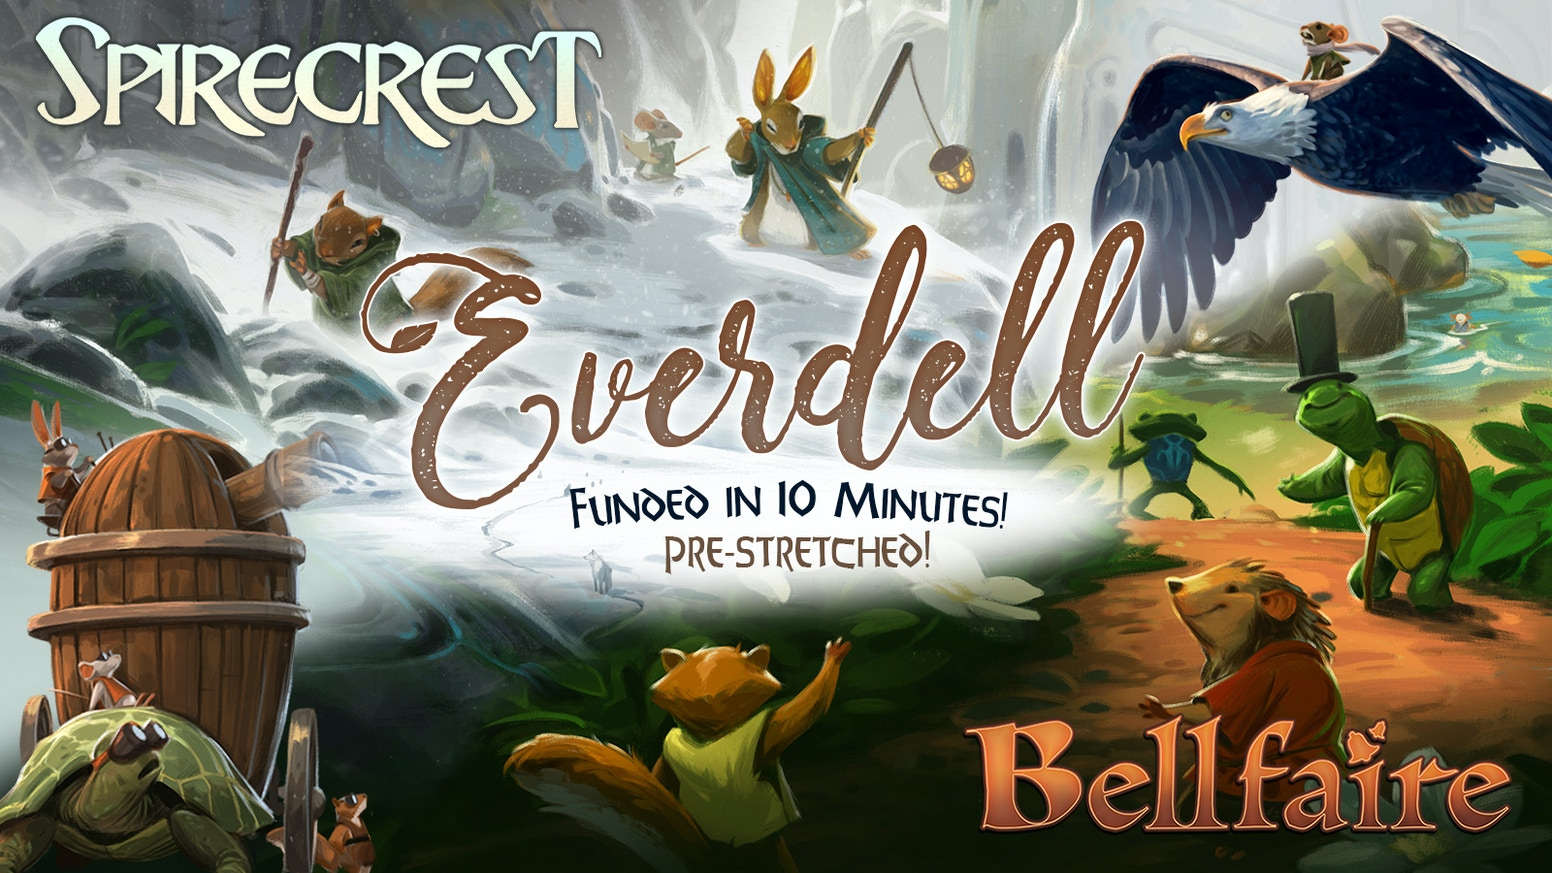 Introducing two exciting new expansions for Everdell! Expand Everdell up to 6 players, and travel to the far-off Spirecrest Mountains!